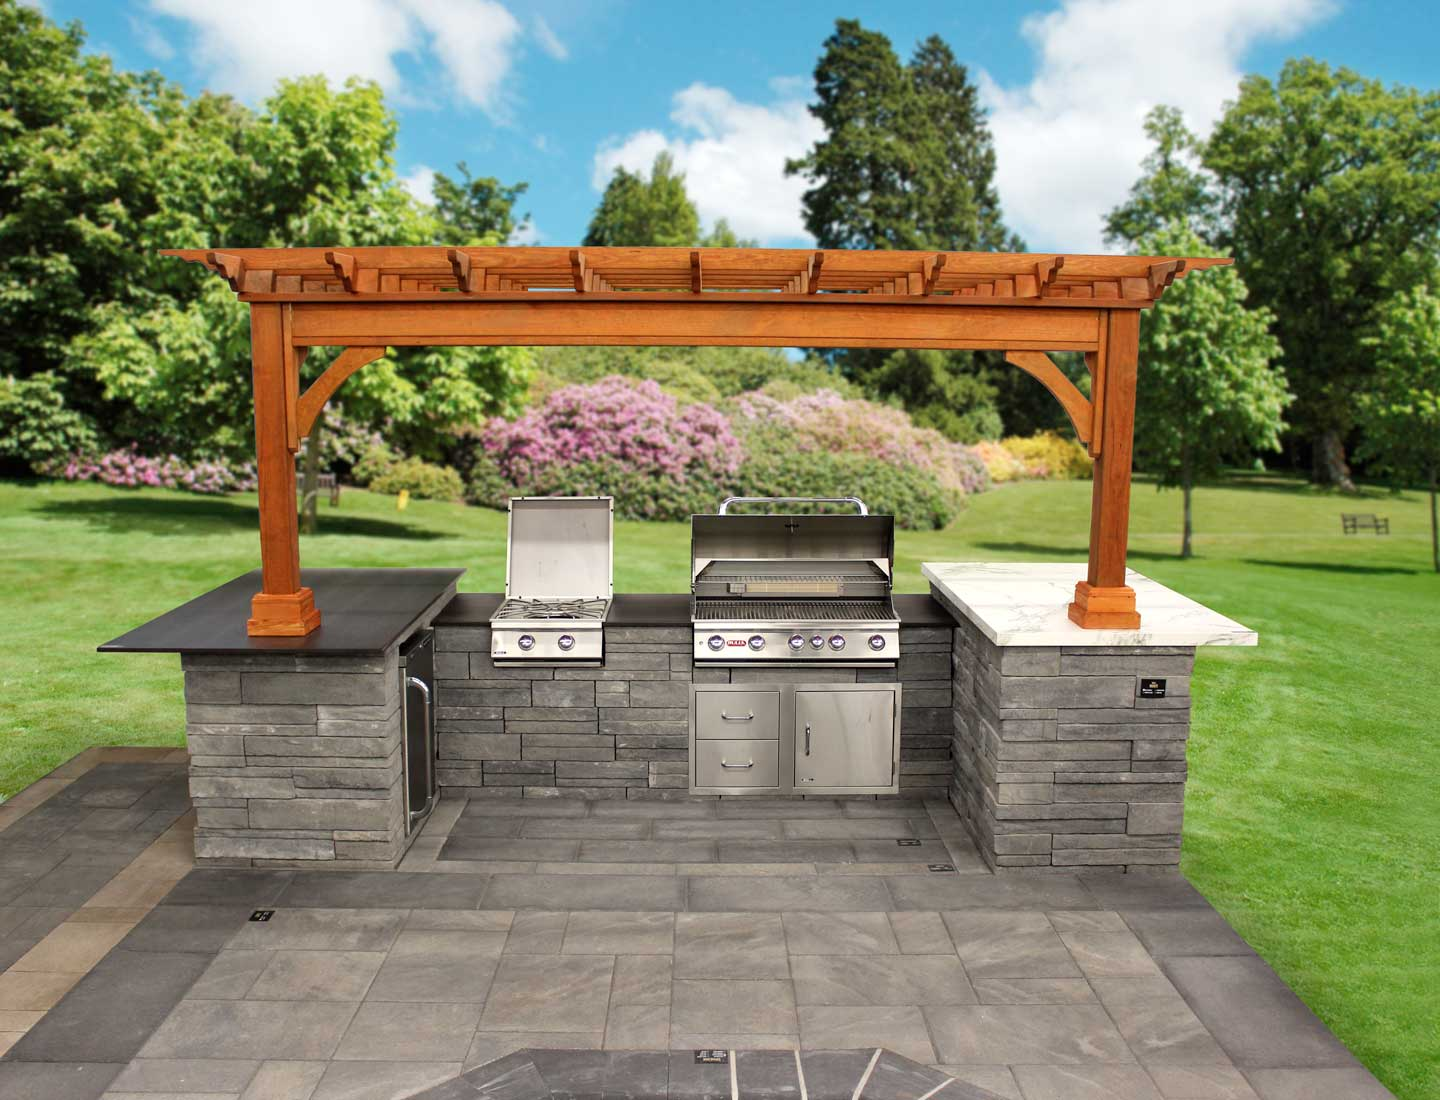 Best In Backyards Releases Tips For Spicing Up A Summer